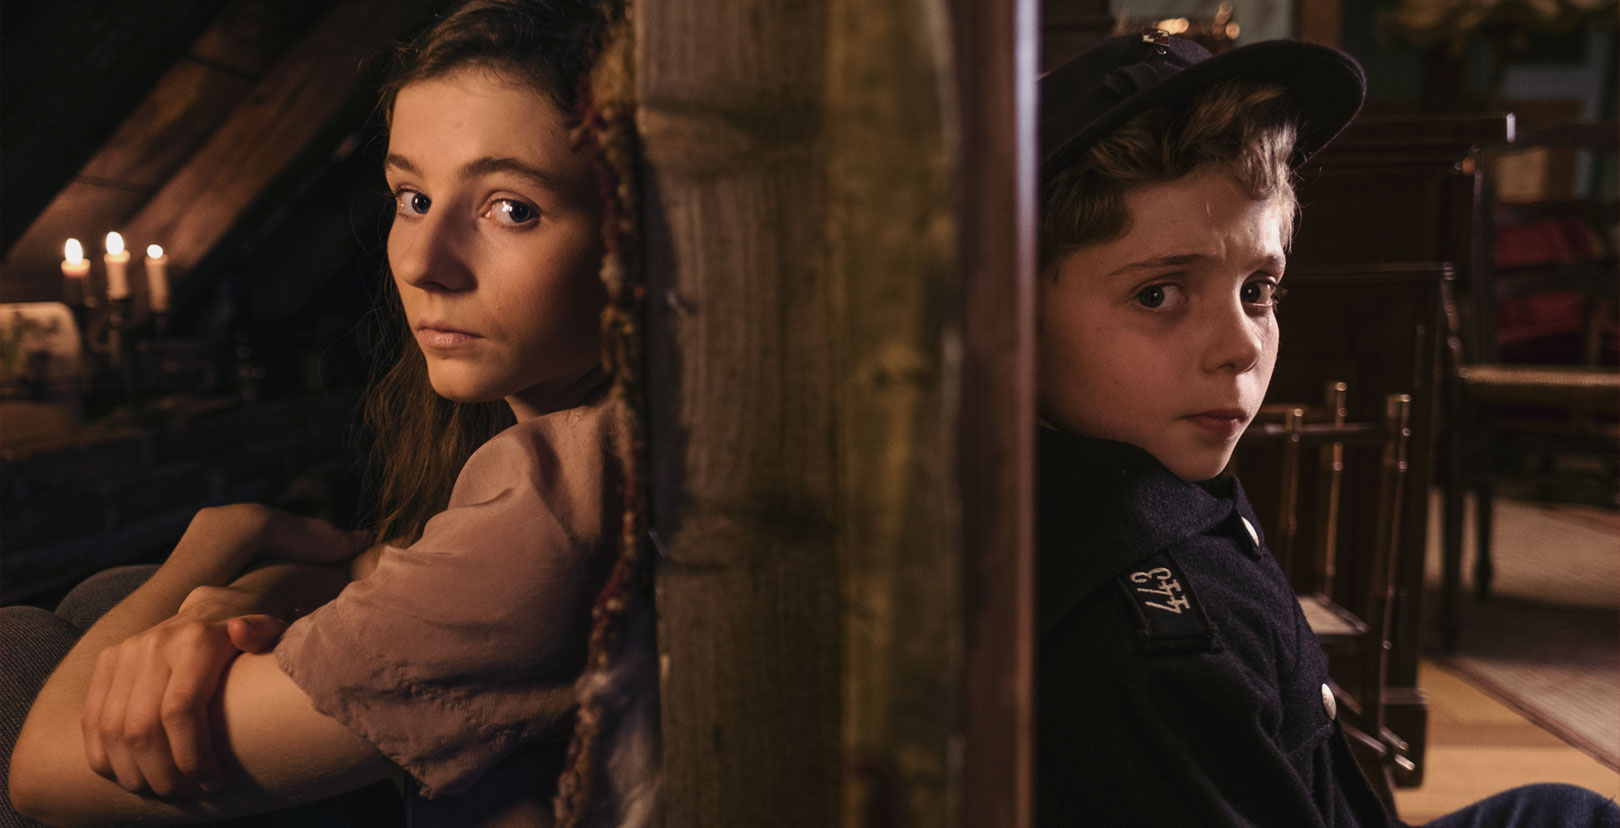 Jojo Rabbit - Thomasin McKenzie and Roman Griffin Davis